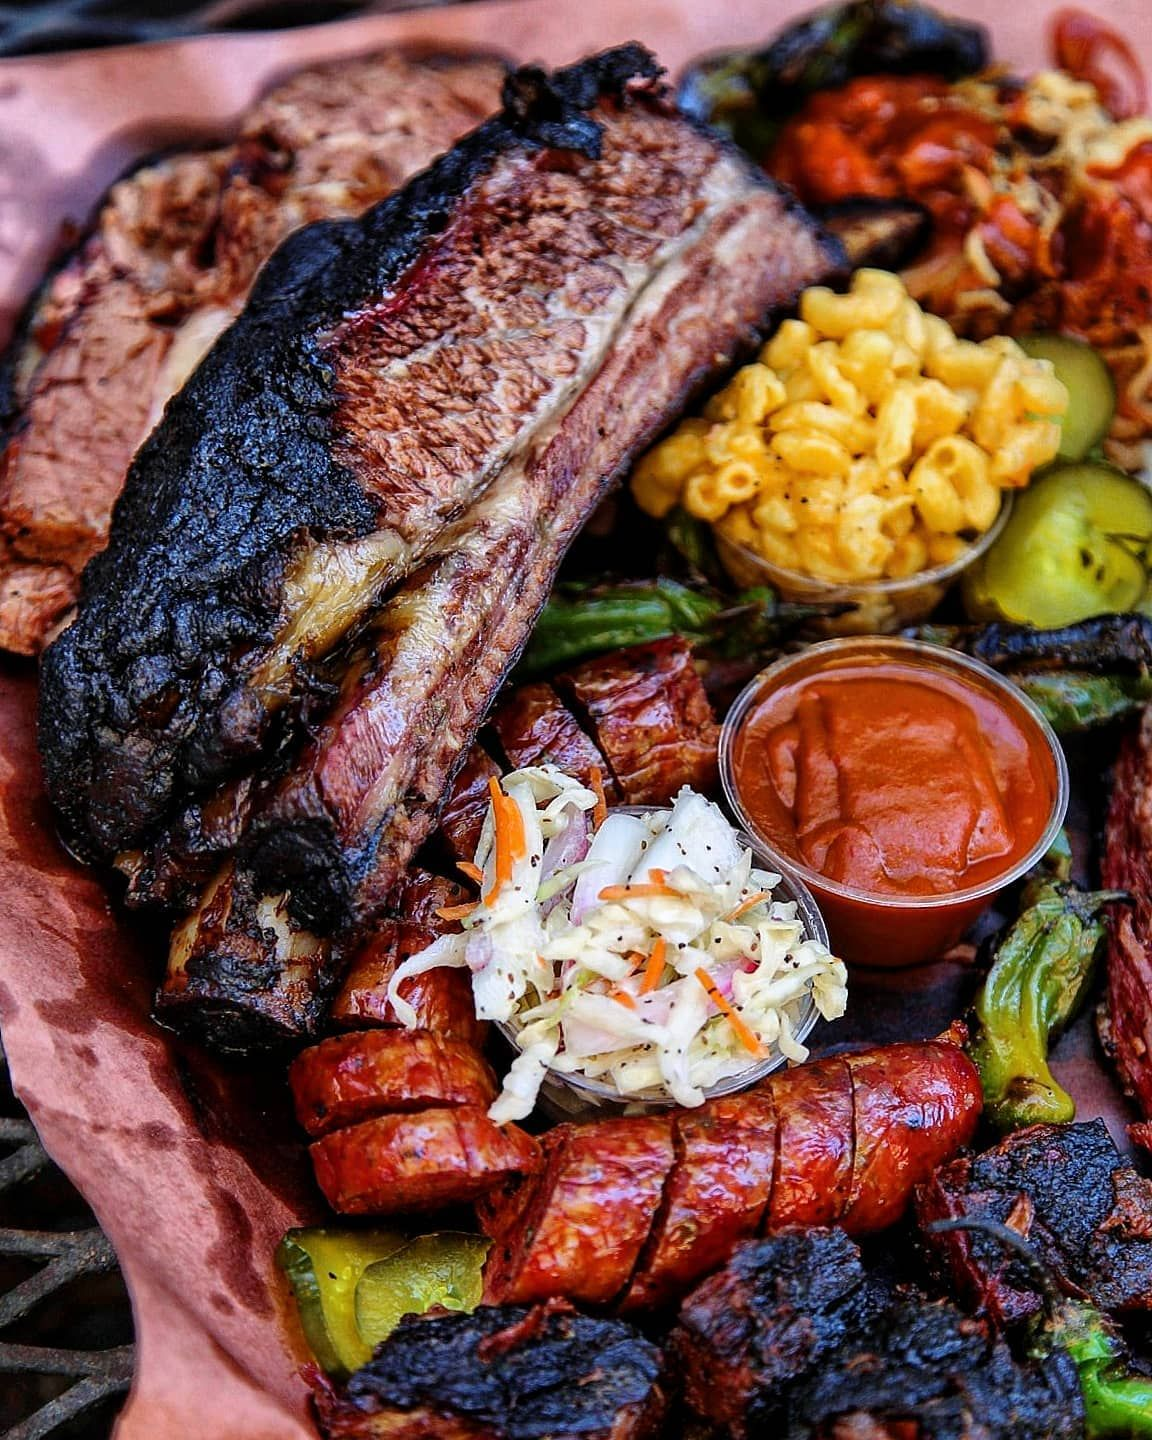 Bringing The Fiiyyyaaaa To The Mile High City Check Out This Gargantuan Barbecue Table Breaker From Ajspitb Beef Ribs Homemade Pastrami Smoked Beef Ribs